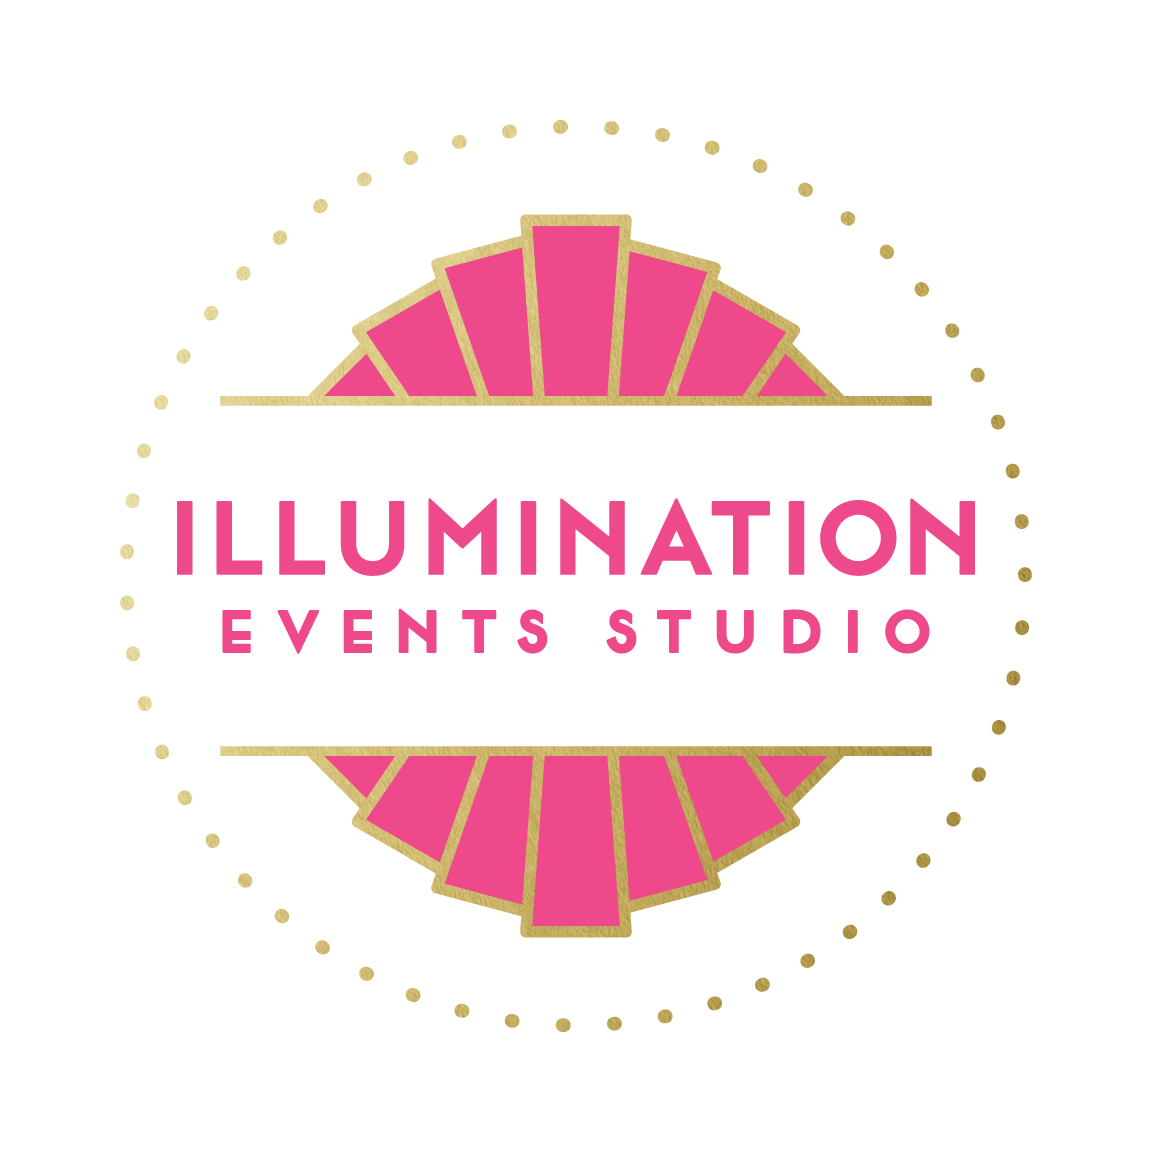 Illumination Events Studio